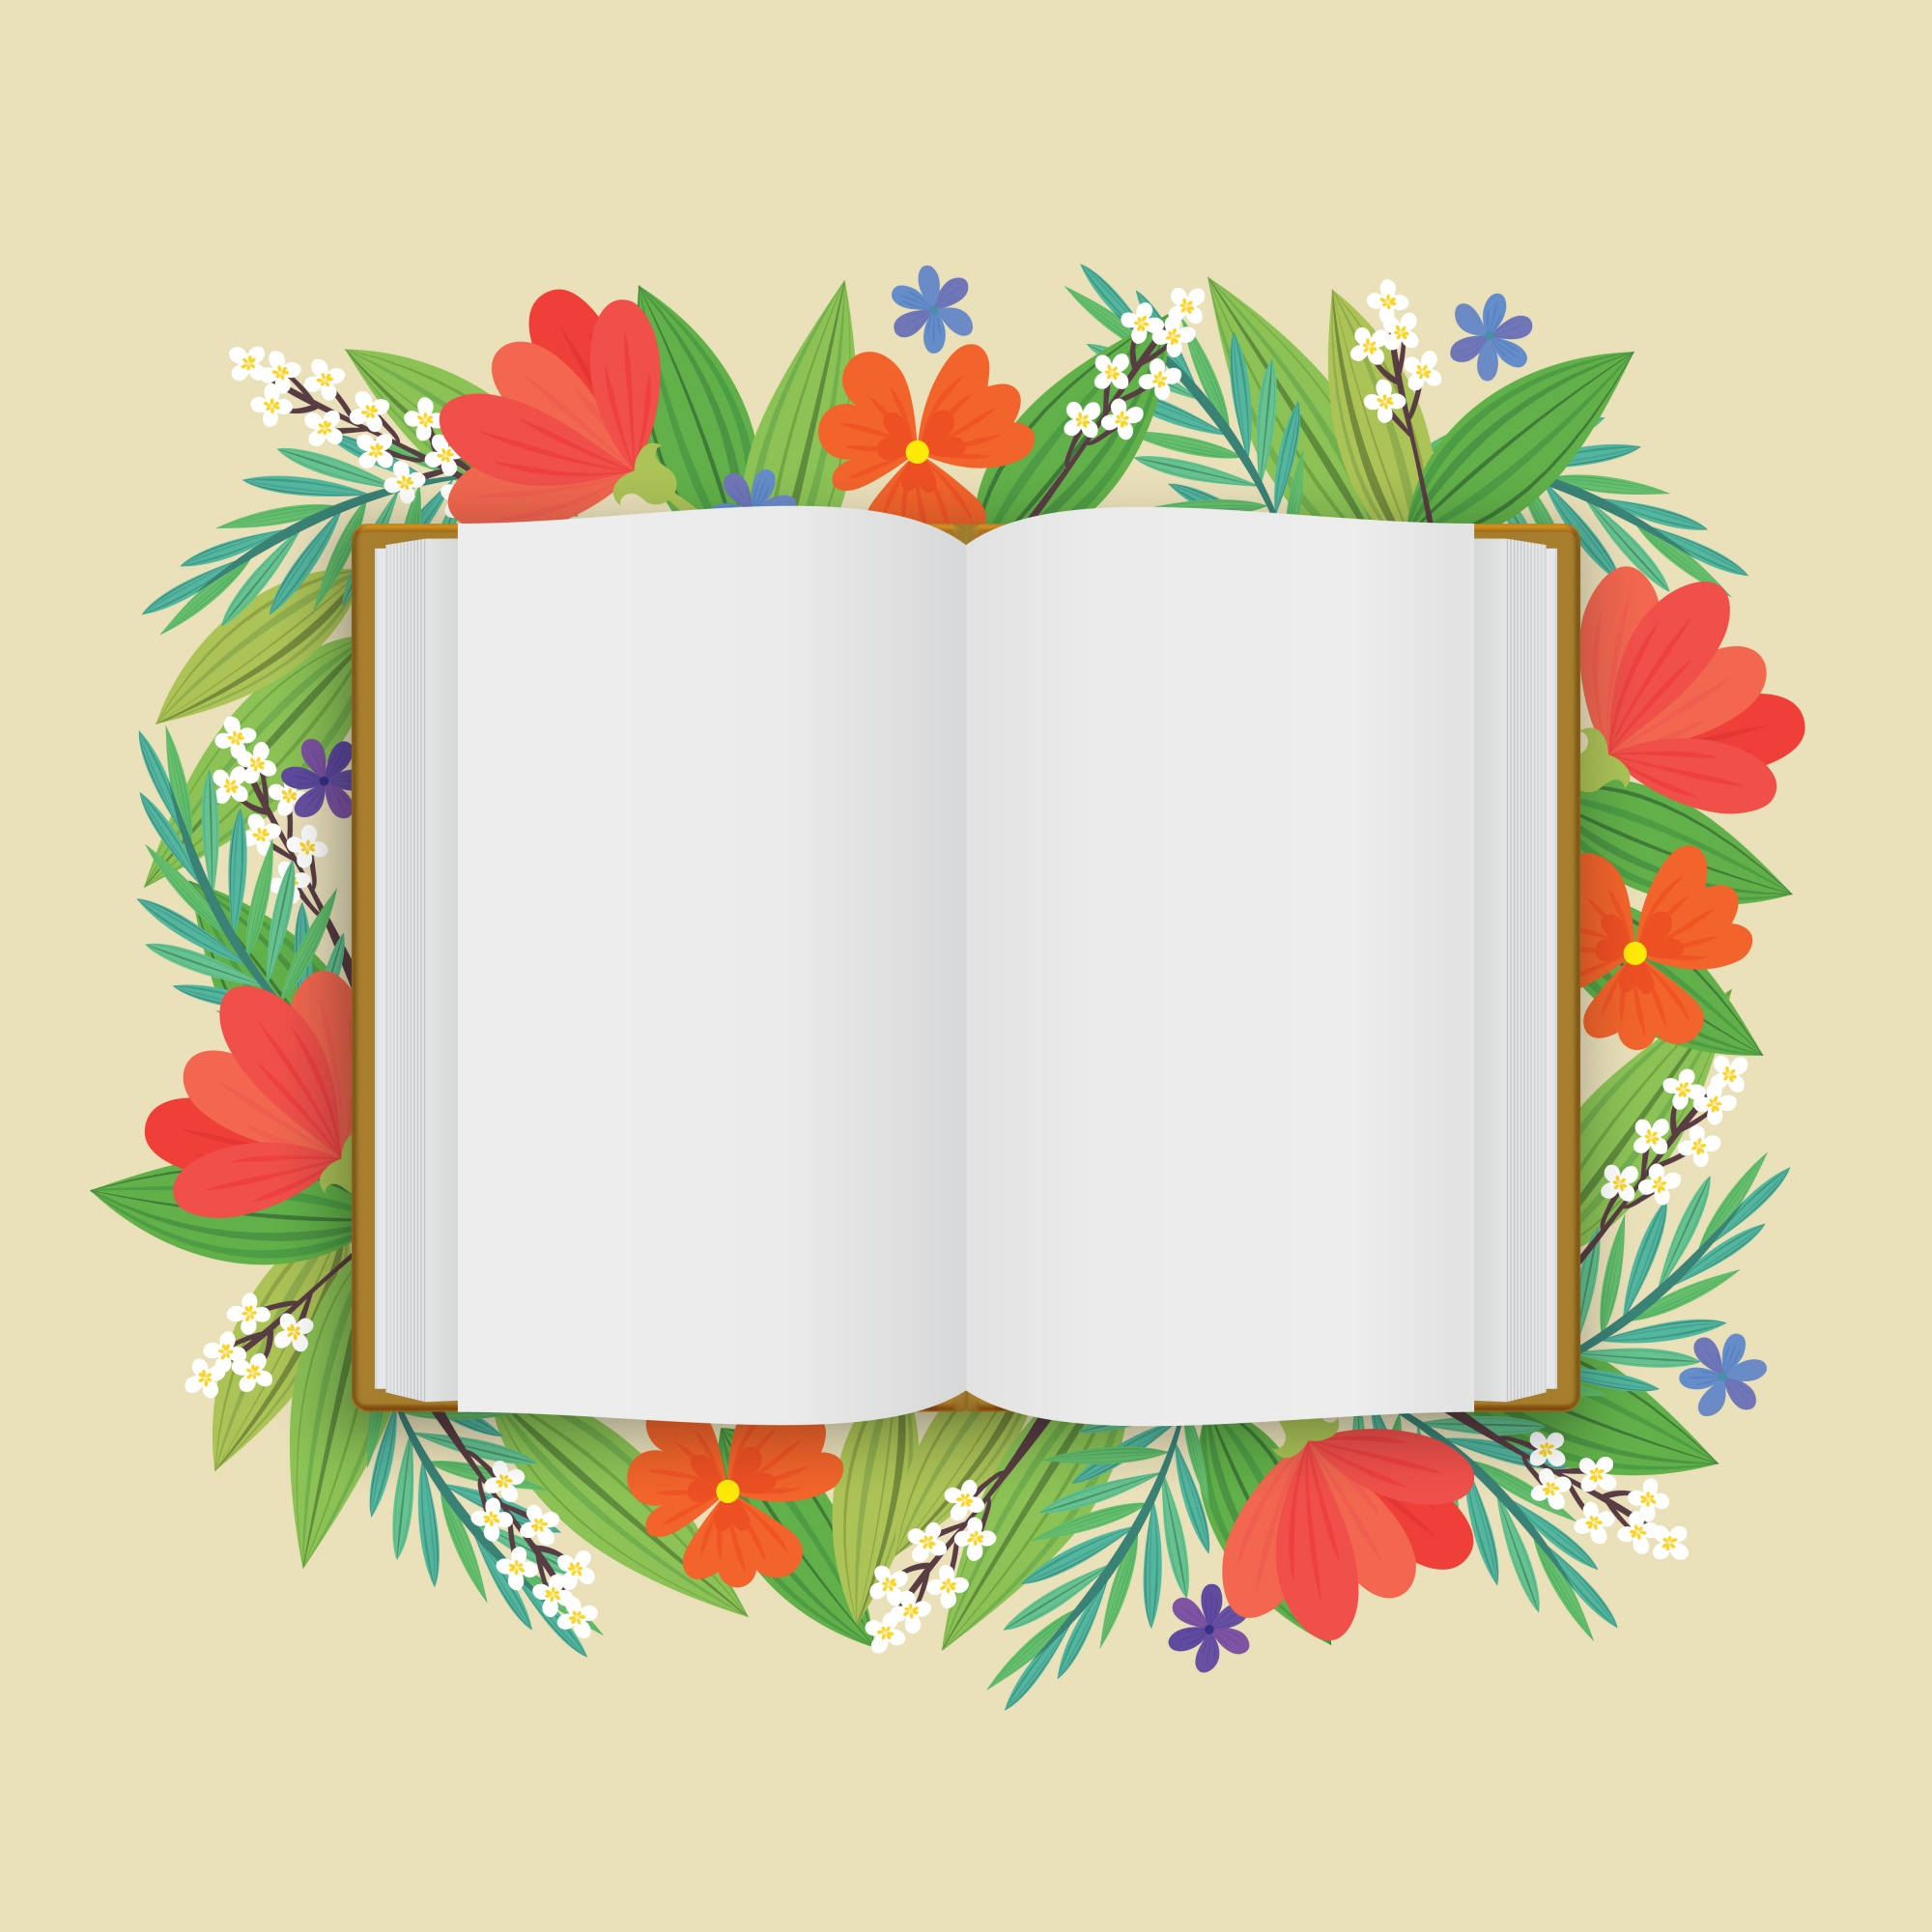 A blank opened white book with flowers in flat style